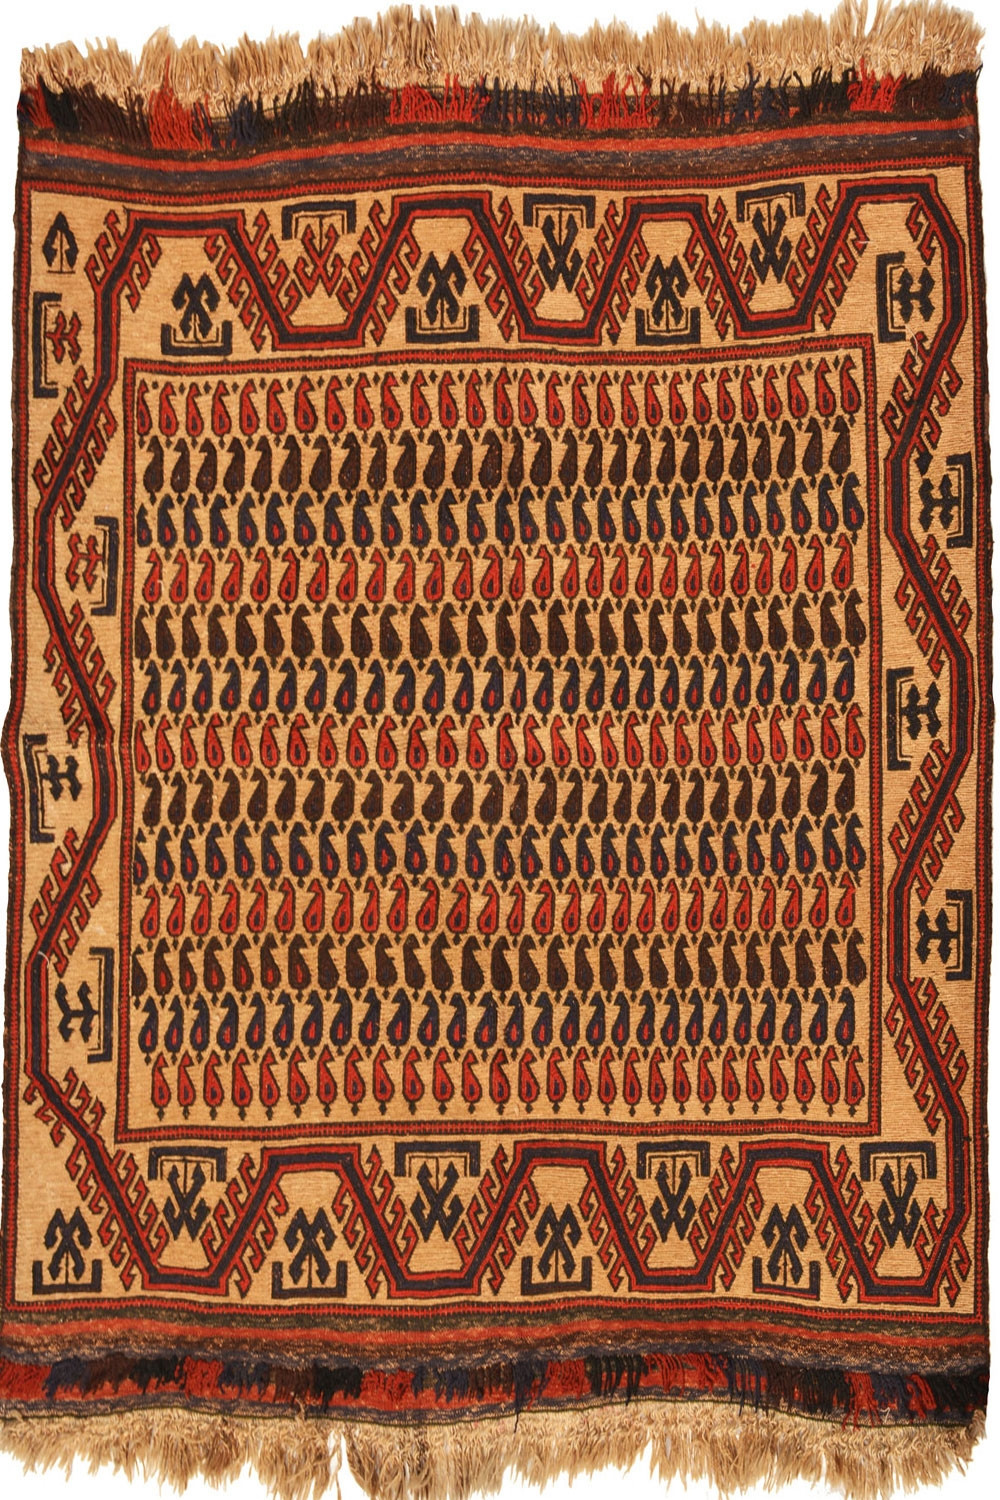 Buy Best Kilim Rugs In Bori Needle Design Online